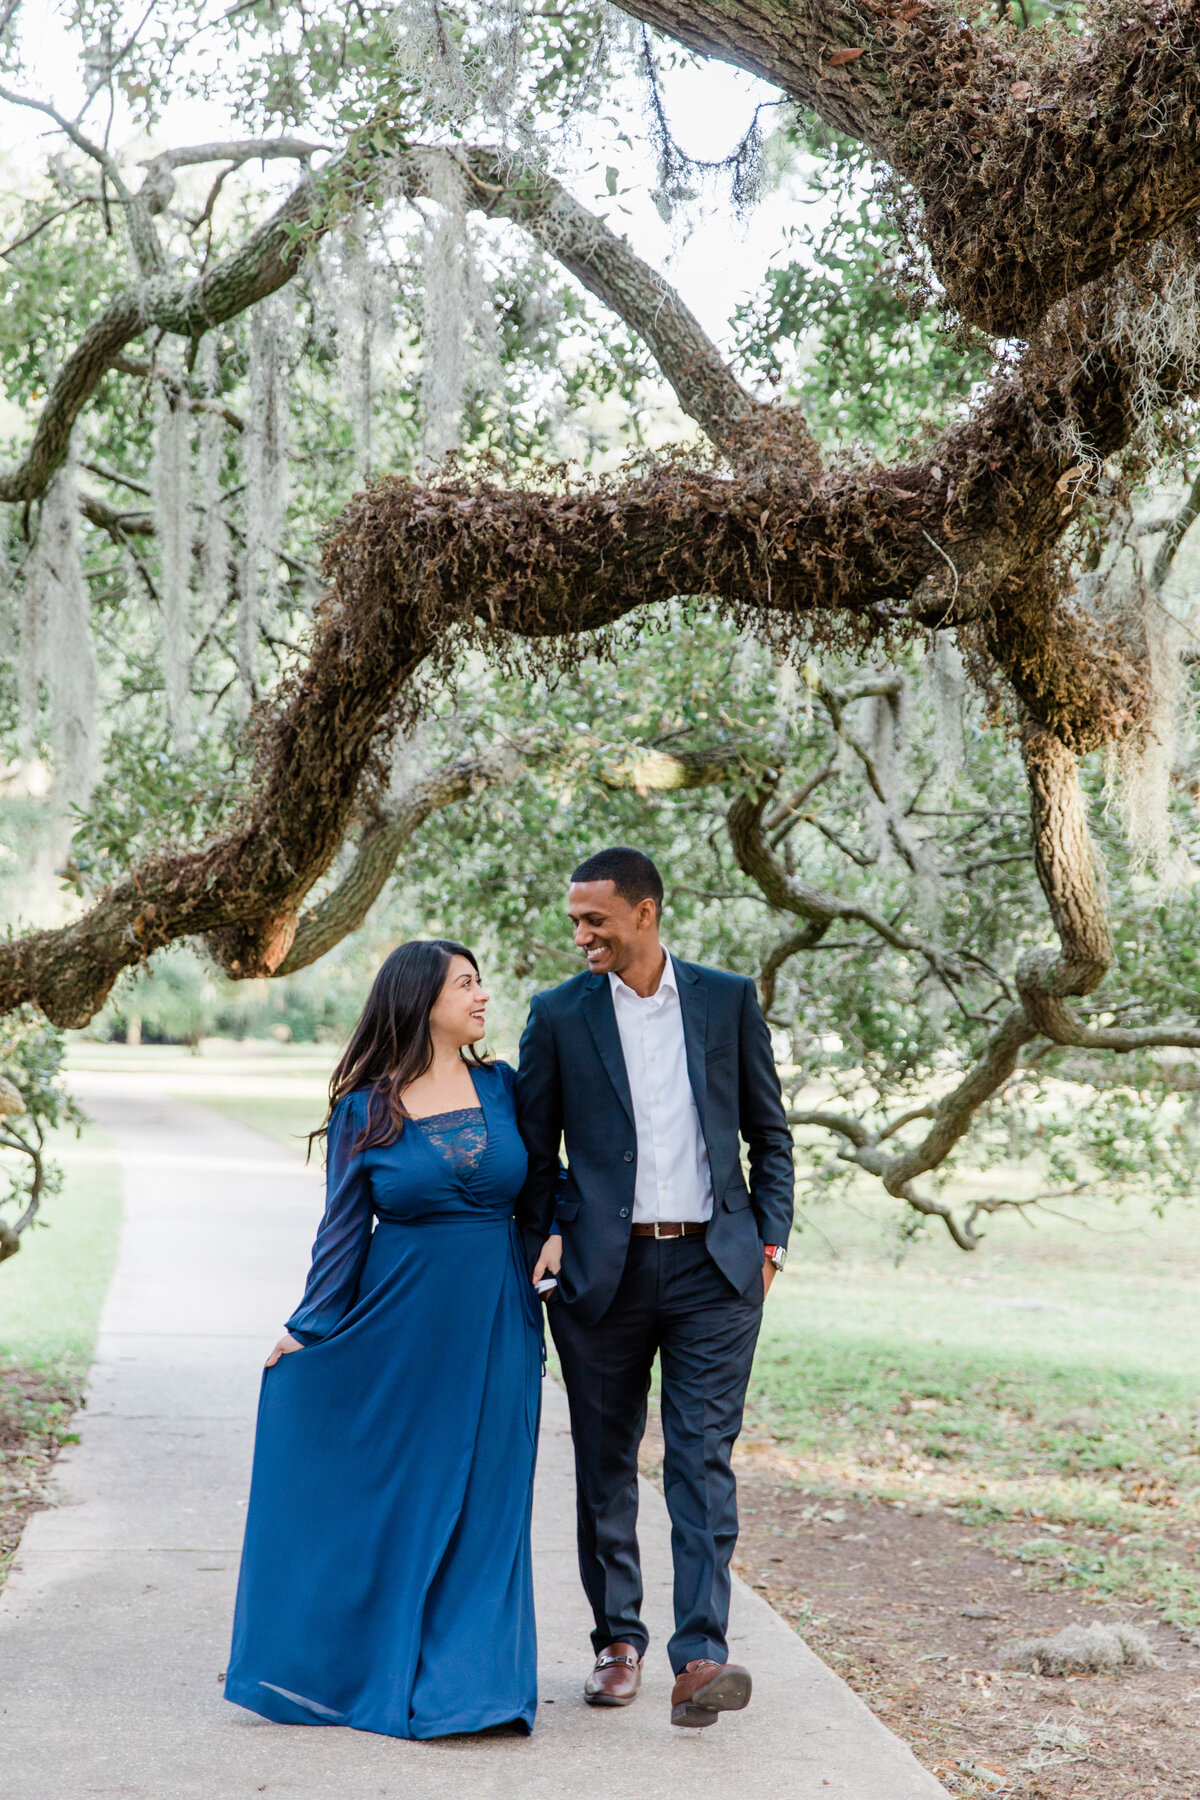 11.13.19 Alexis & Reece's Engagement - New Orleans Louisiana - Ivette West Photography-36